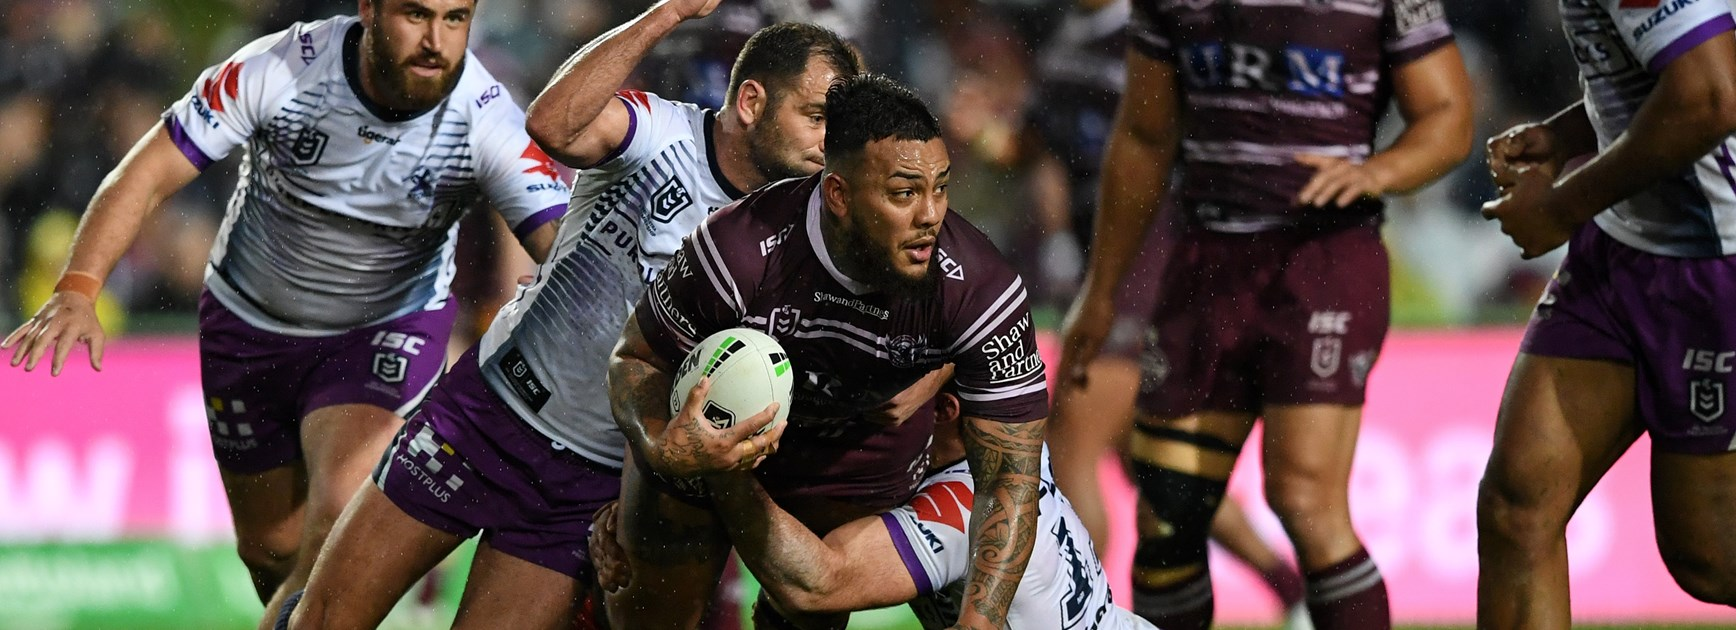 Sea Eagles go down to Storm at Lottoland